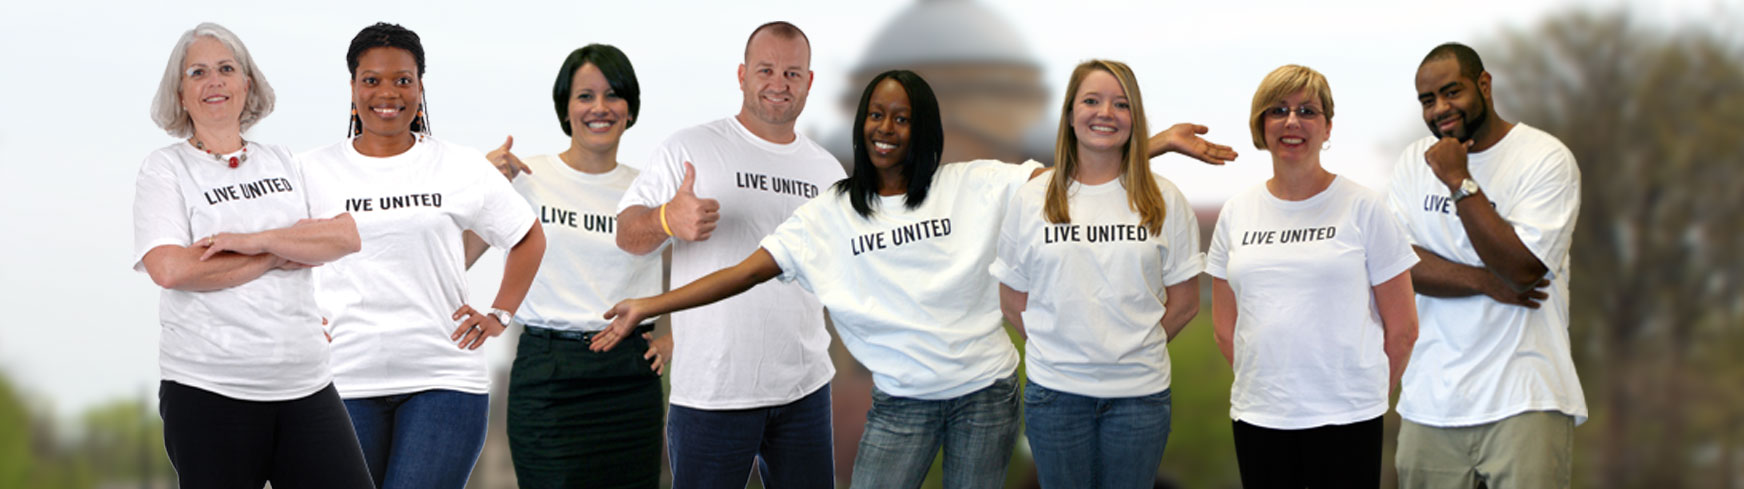 United Way of Wyoming Valley -  Fight Childhood Poverty